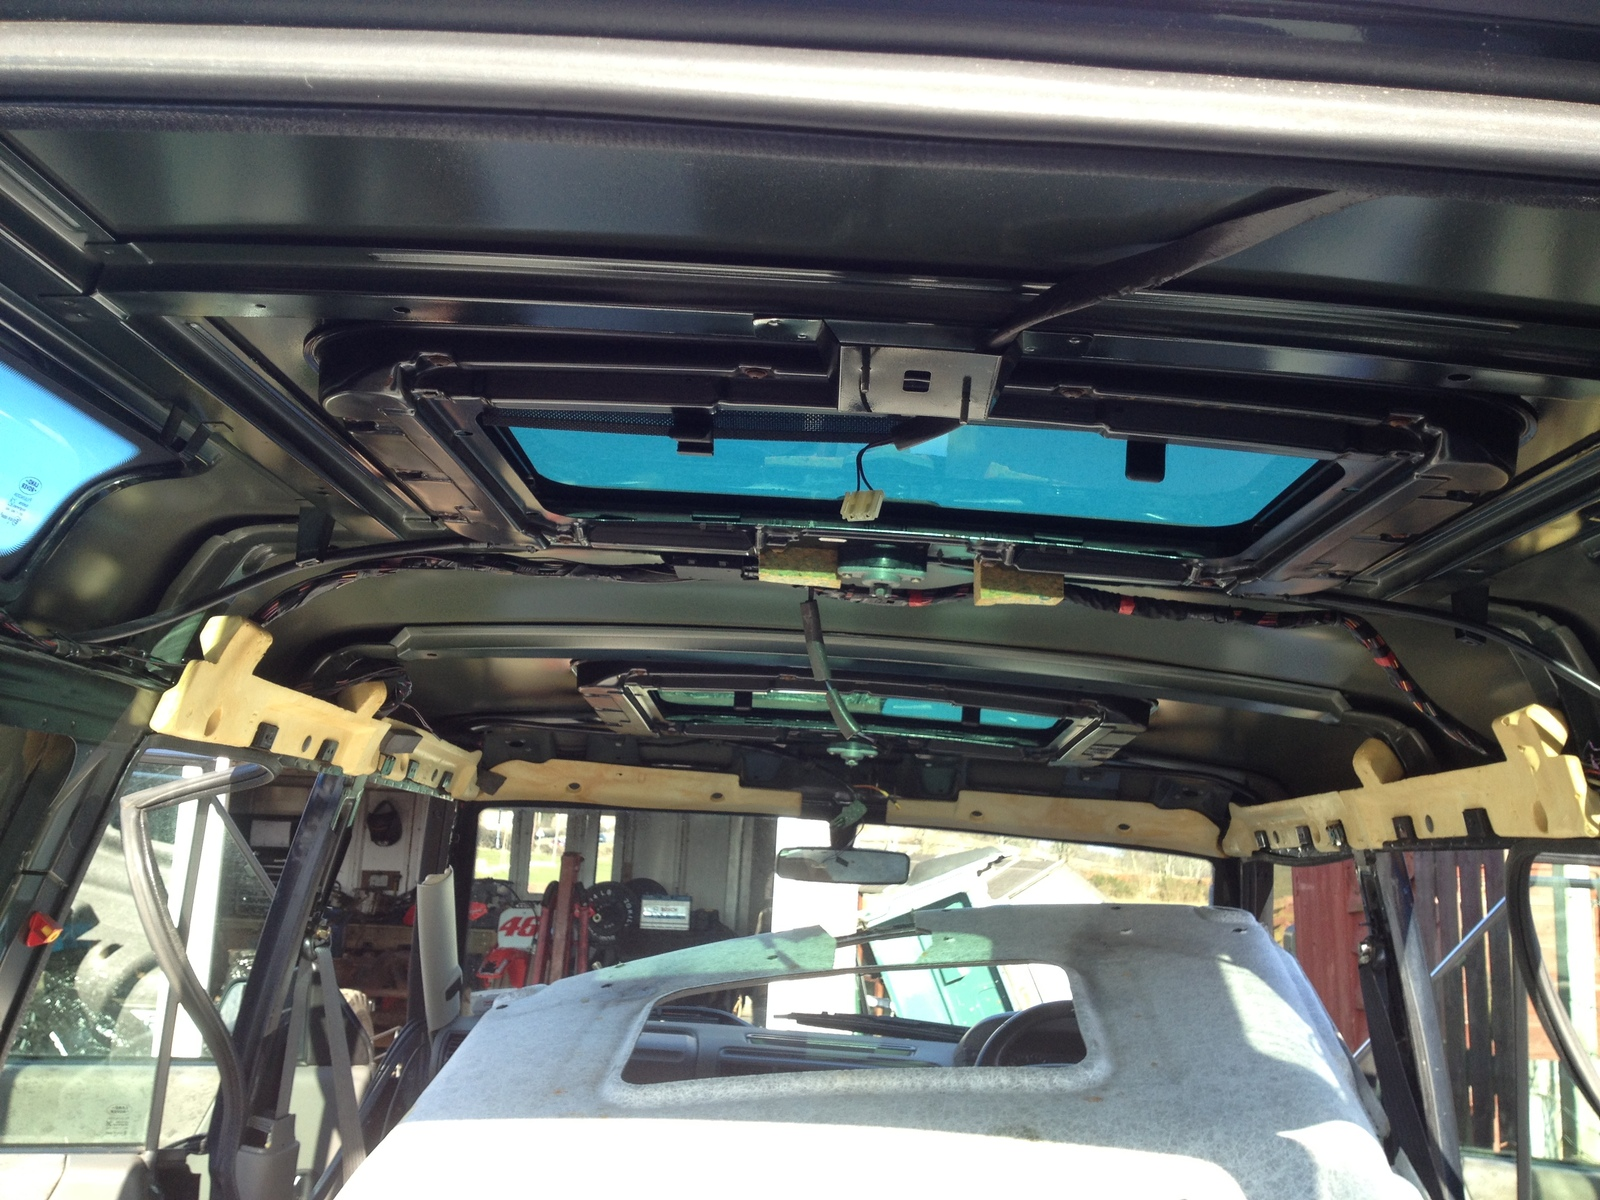 Range Rover P38 Seats into Disco 2 Full weekends work